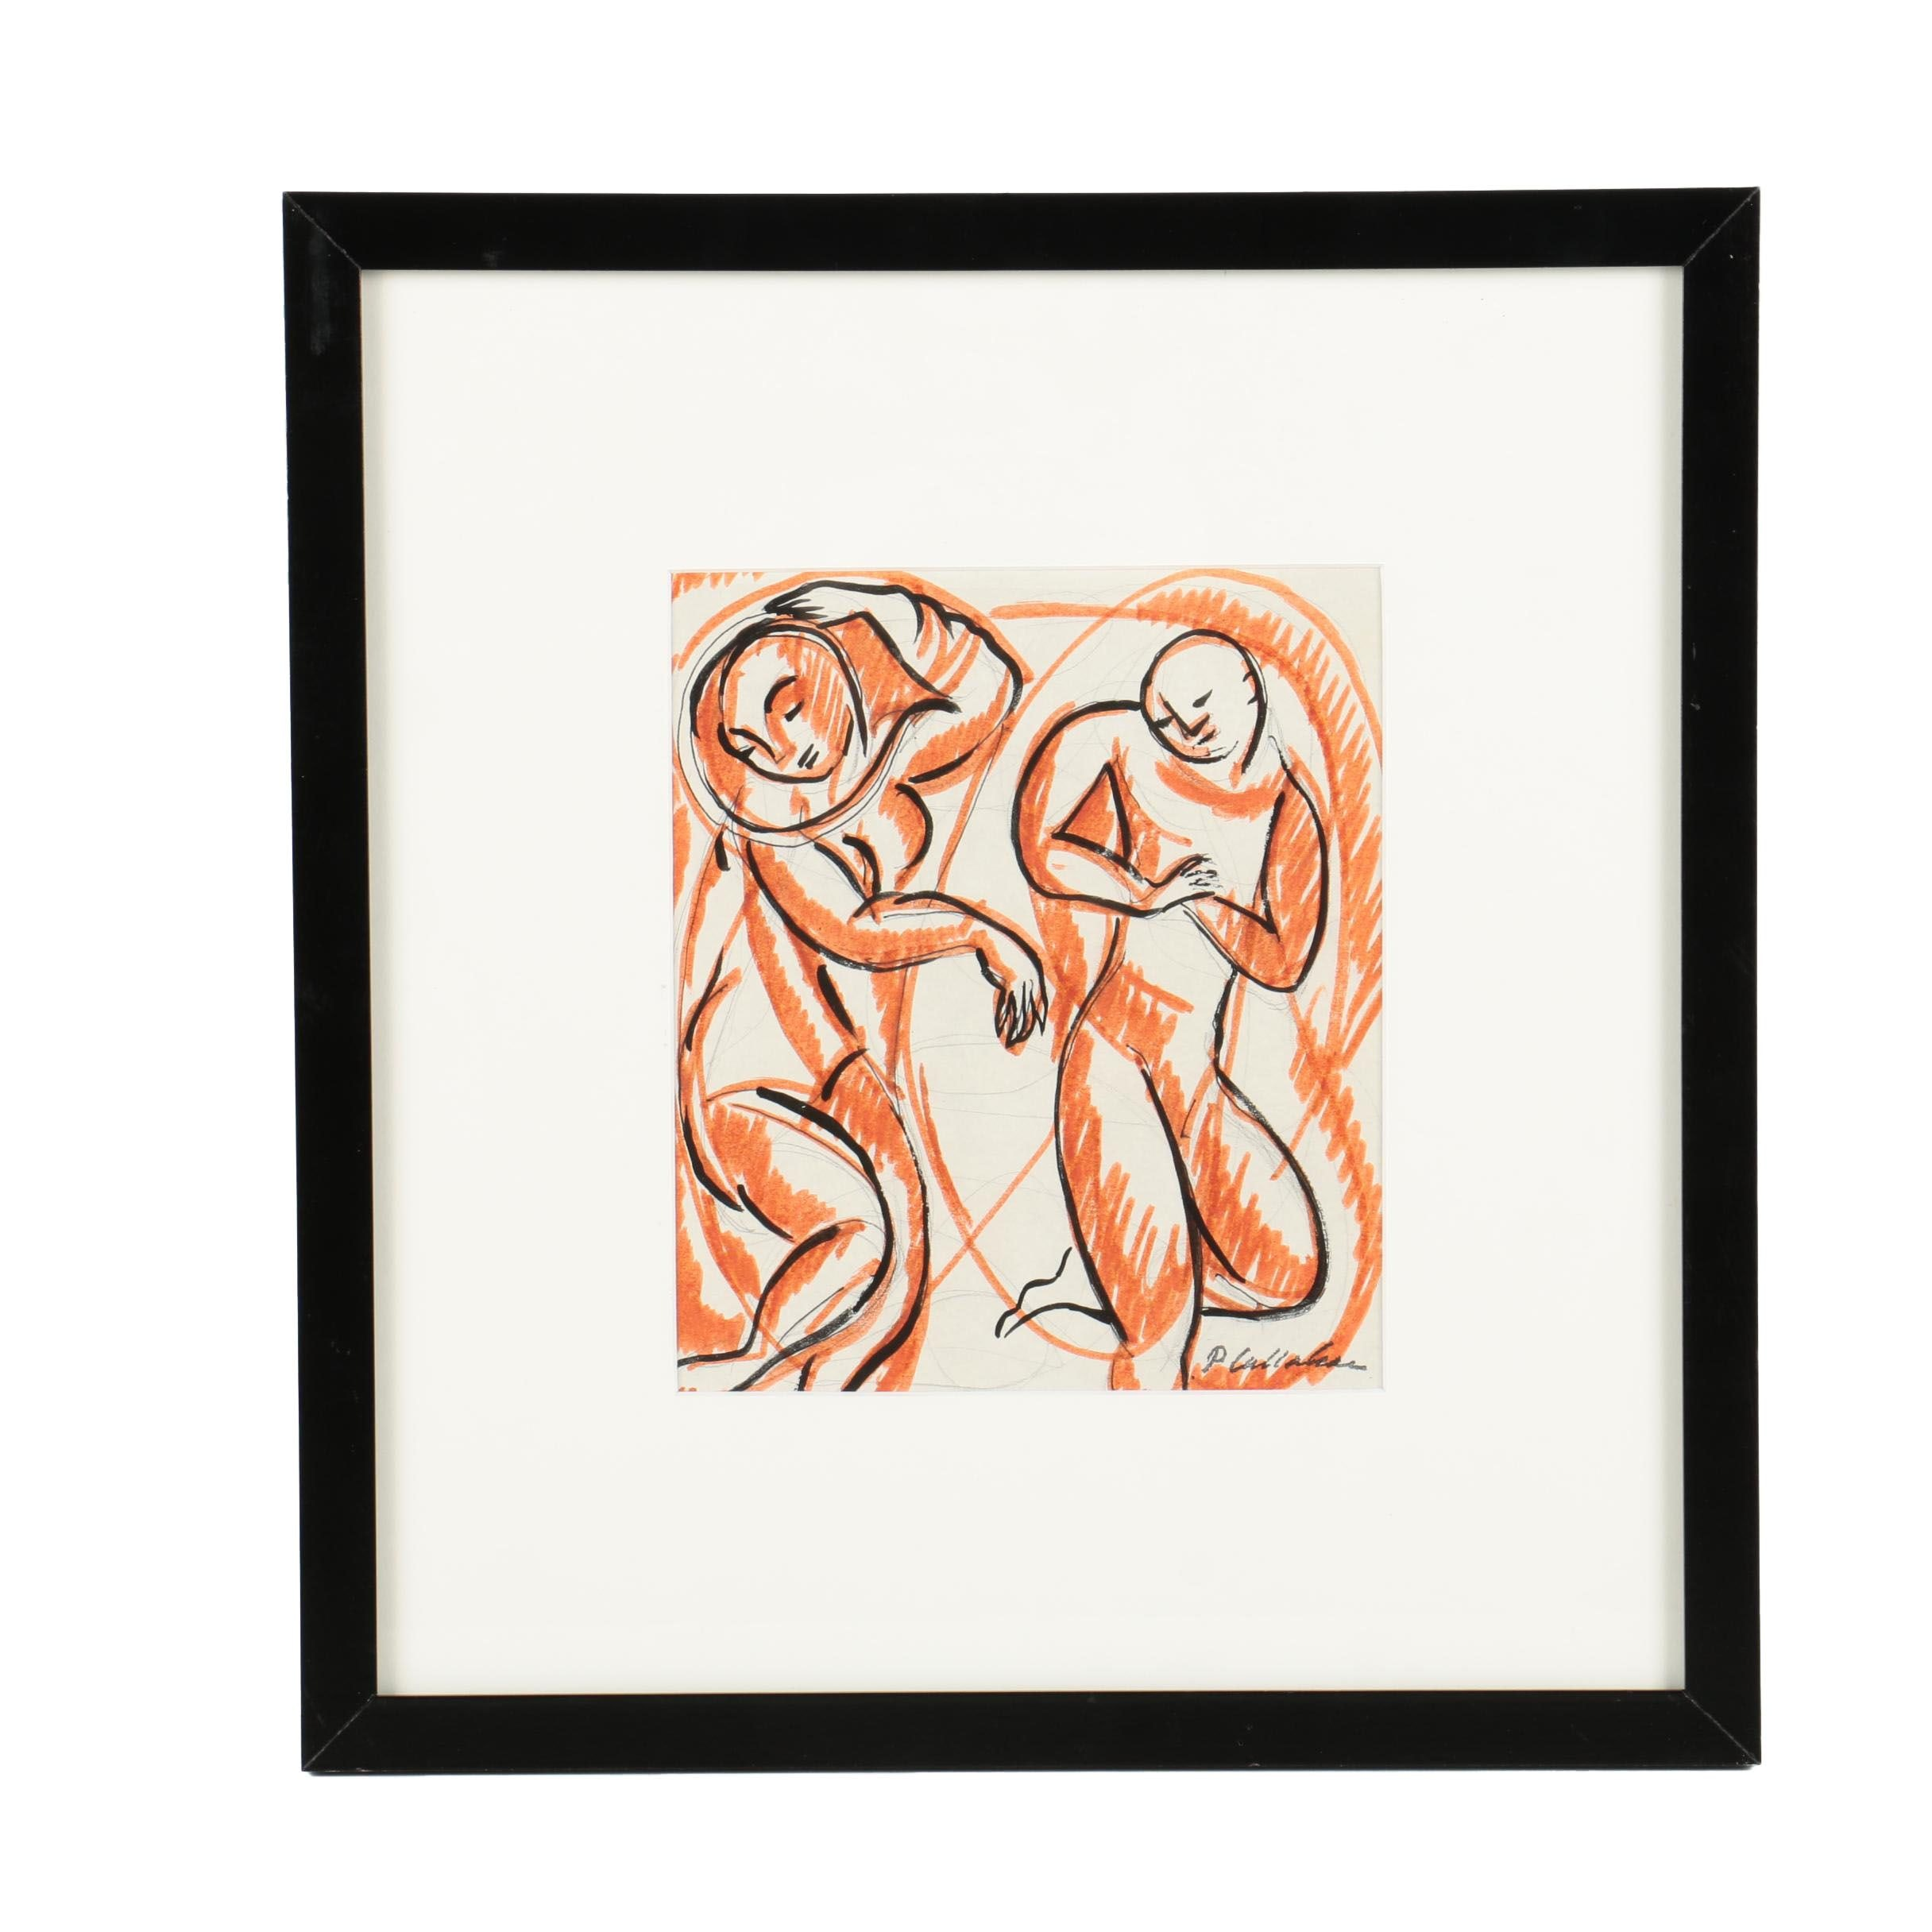 Phillip Callahan Graphite and Ink Drawing of Two Figures